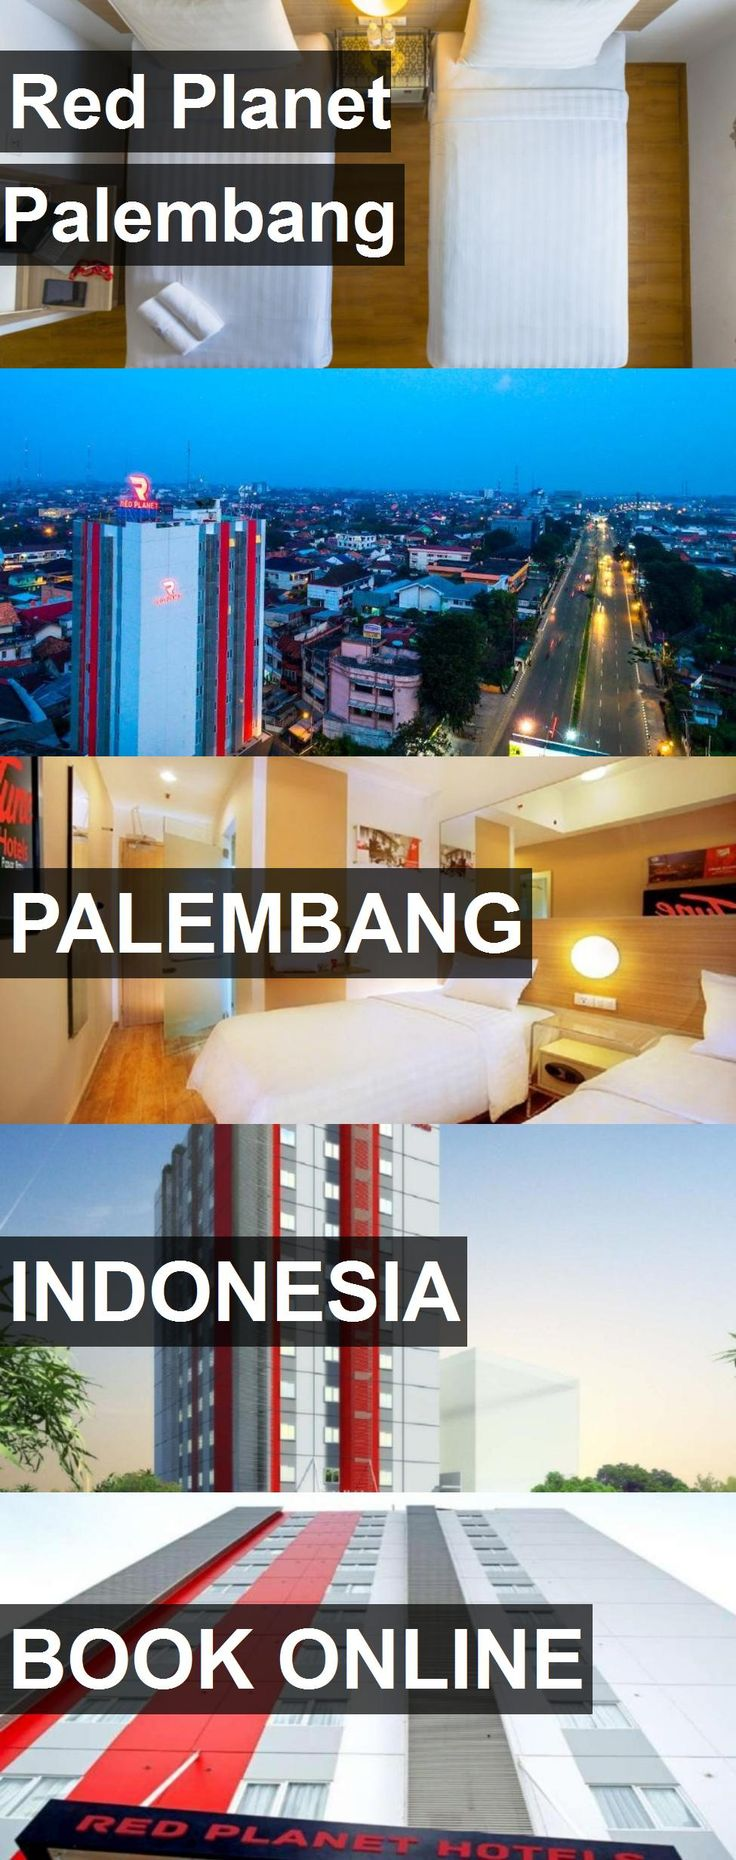 Hotel Red Planet Palembang in Palembang, Indonesia. For more information, photos, reviews and best prices please follow the link. #Indonesia #Palembang #travel #vacation #hotel